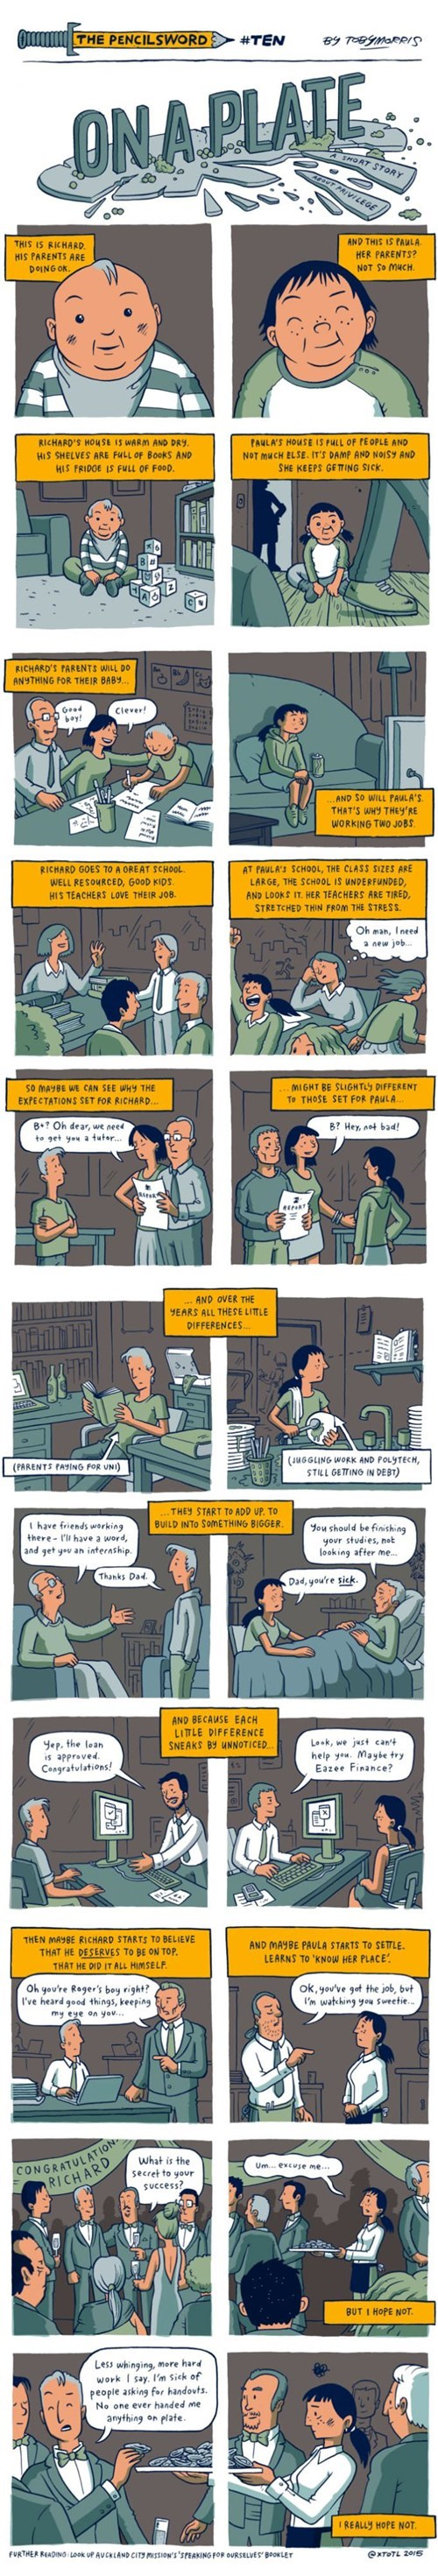 funny-web-comics-the-story-behind-the-mentality-behind-rich-people